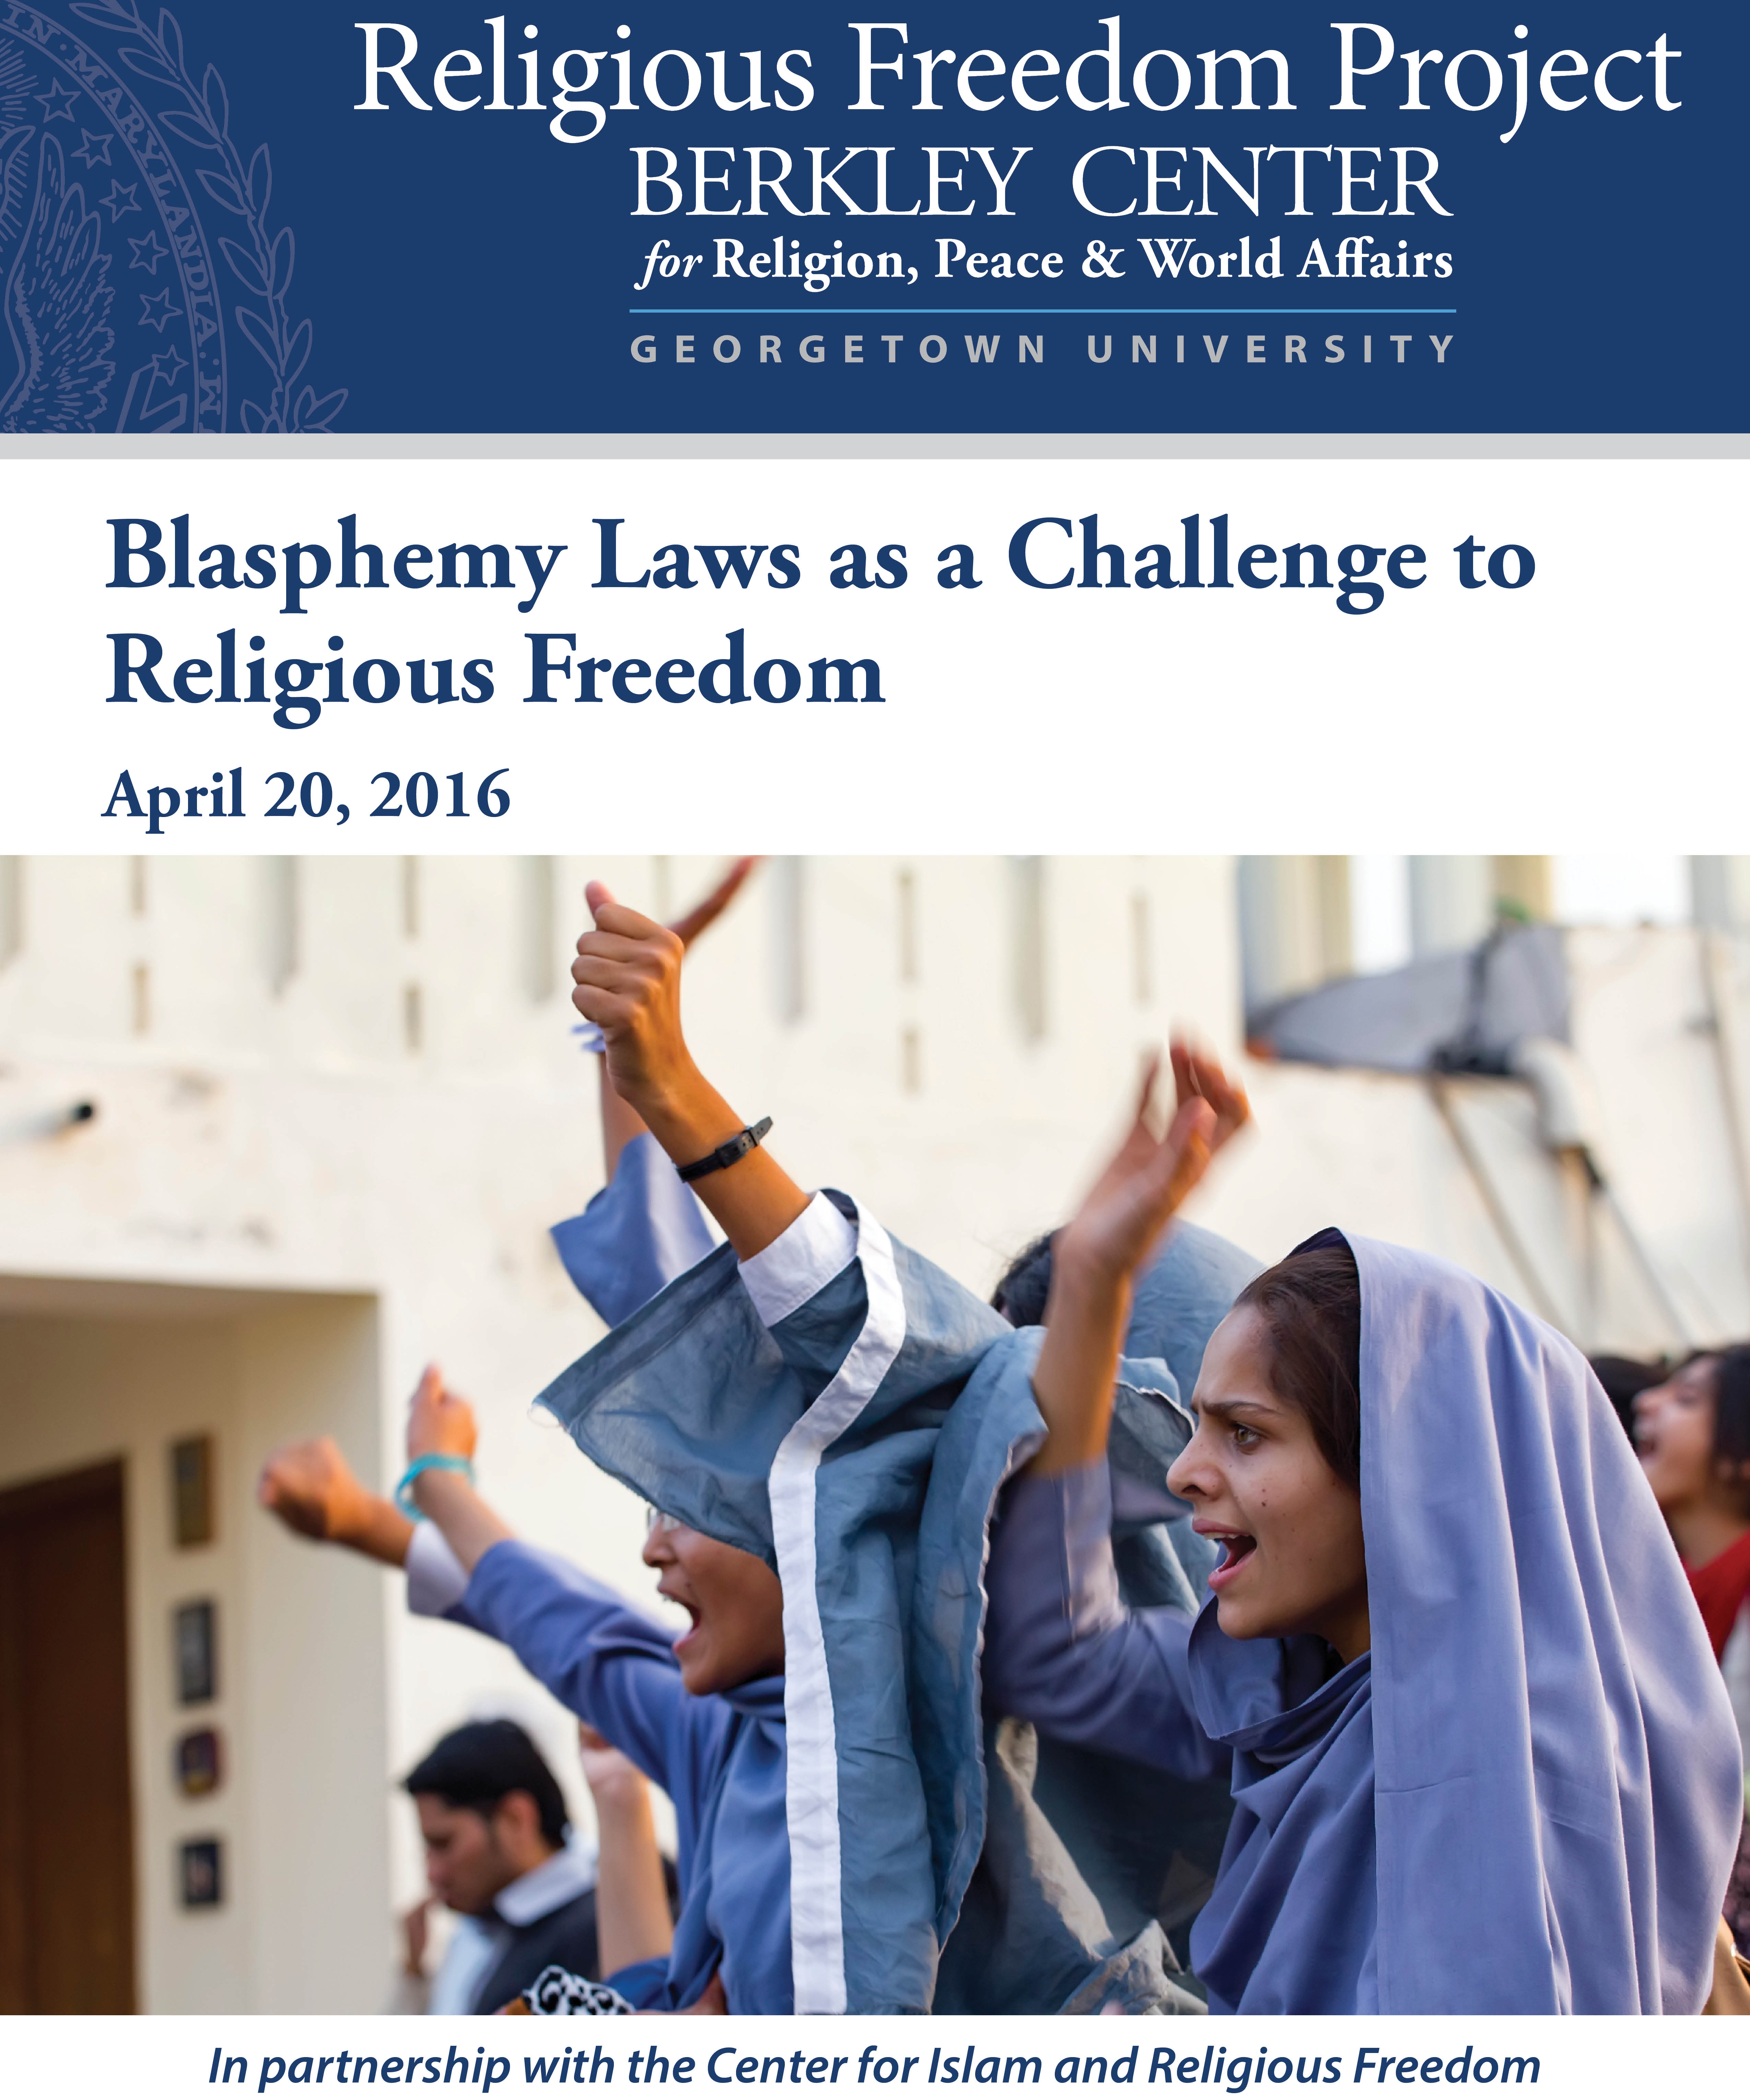 Blasphemy Laws as a Challenge to Religious Freedom